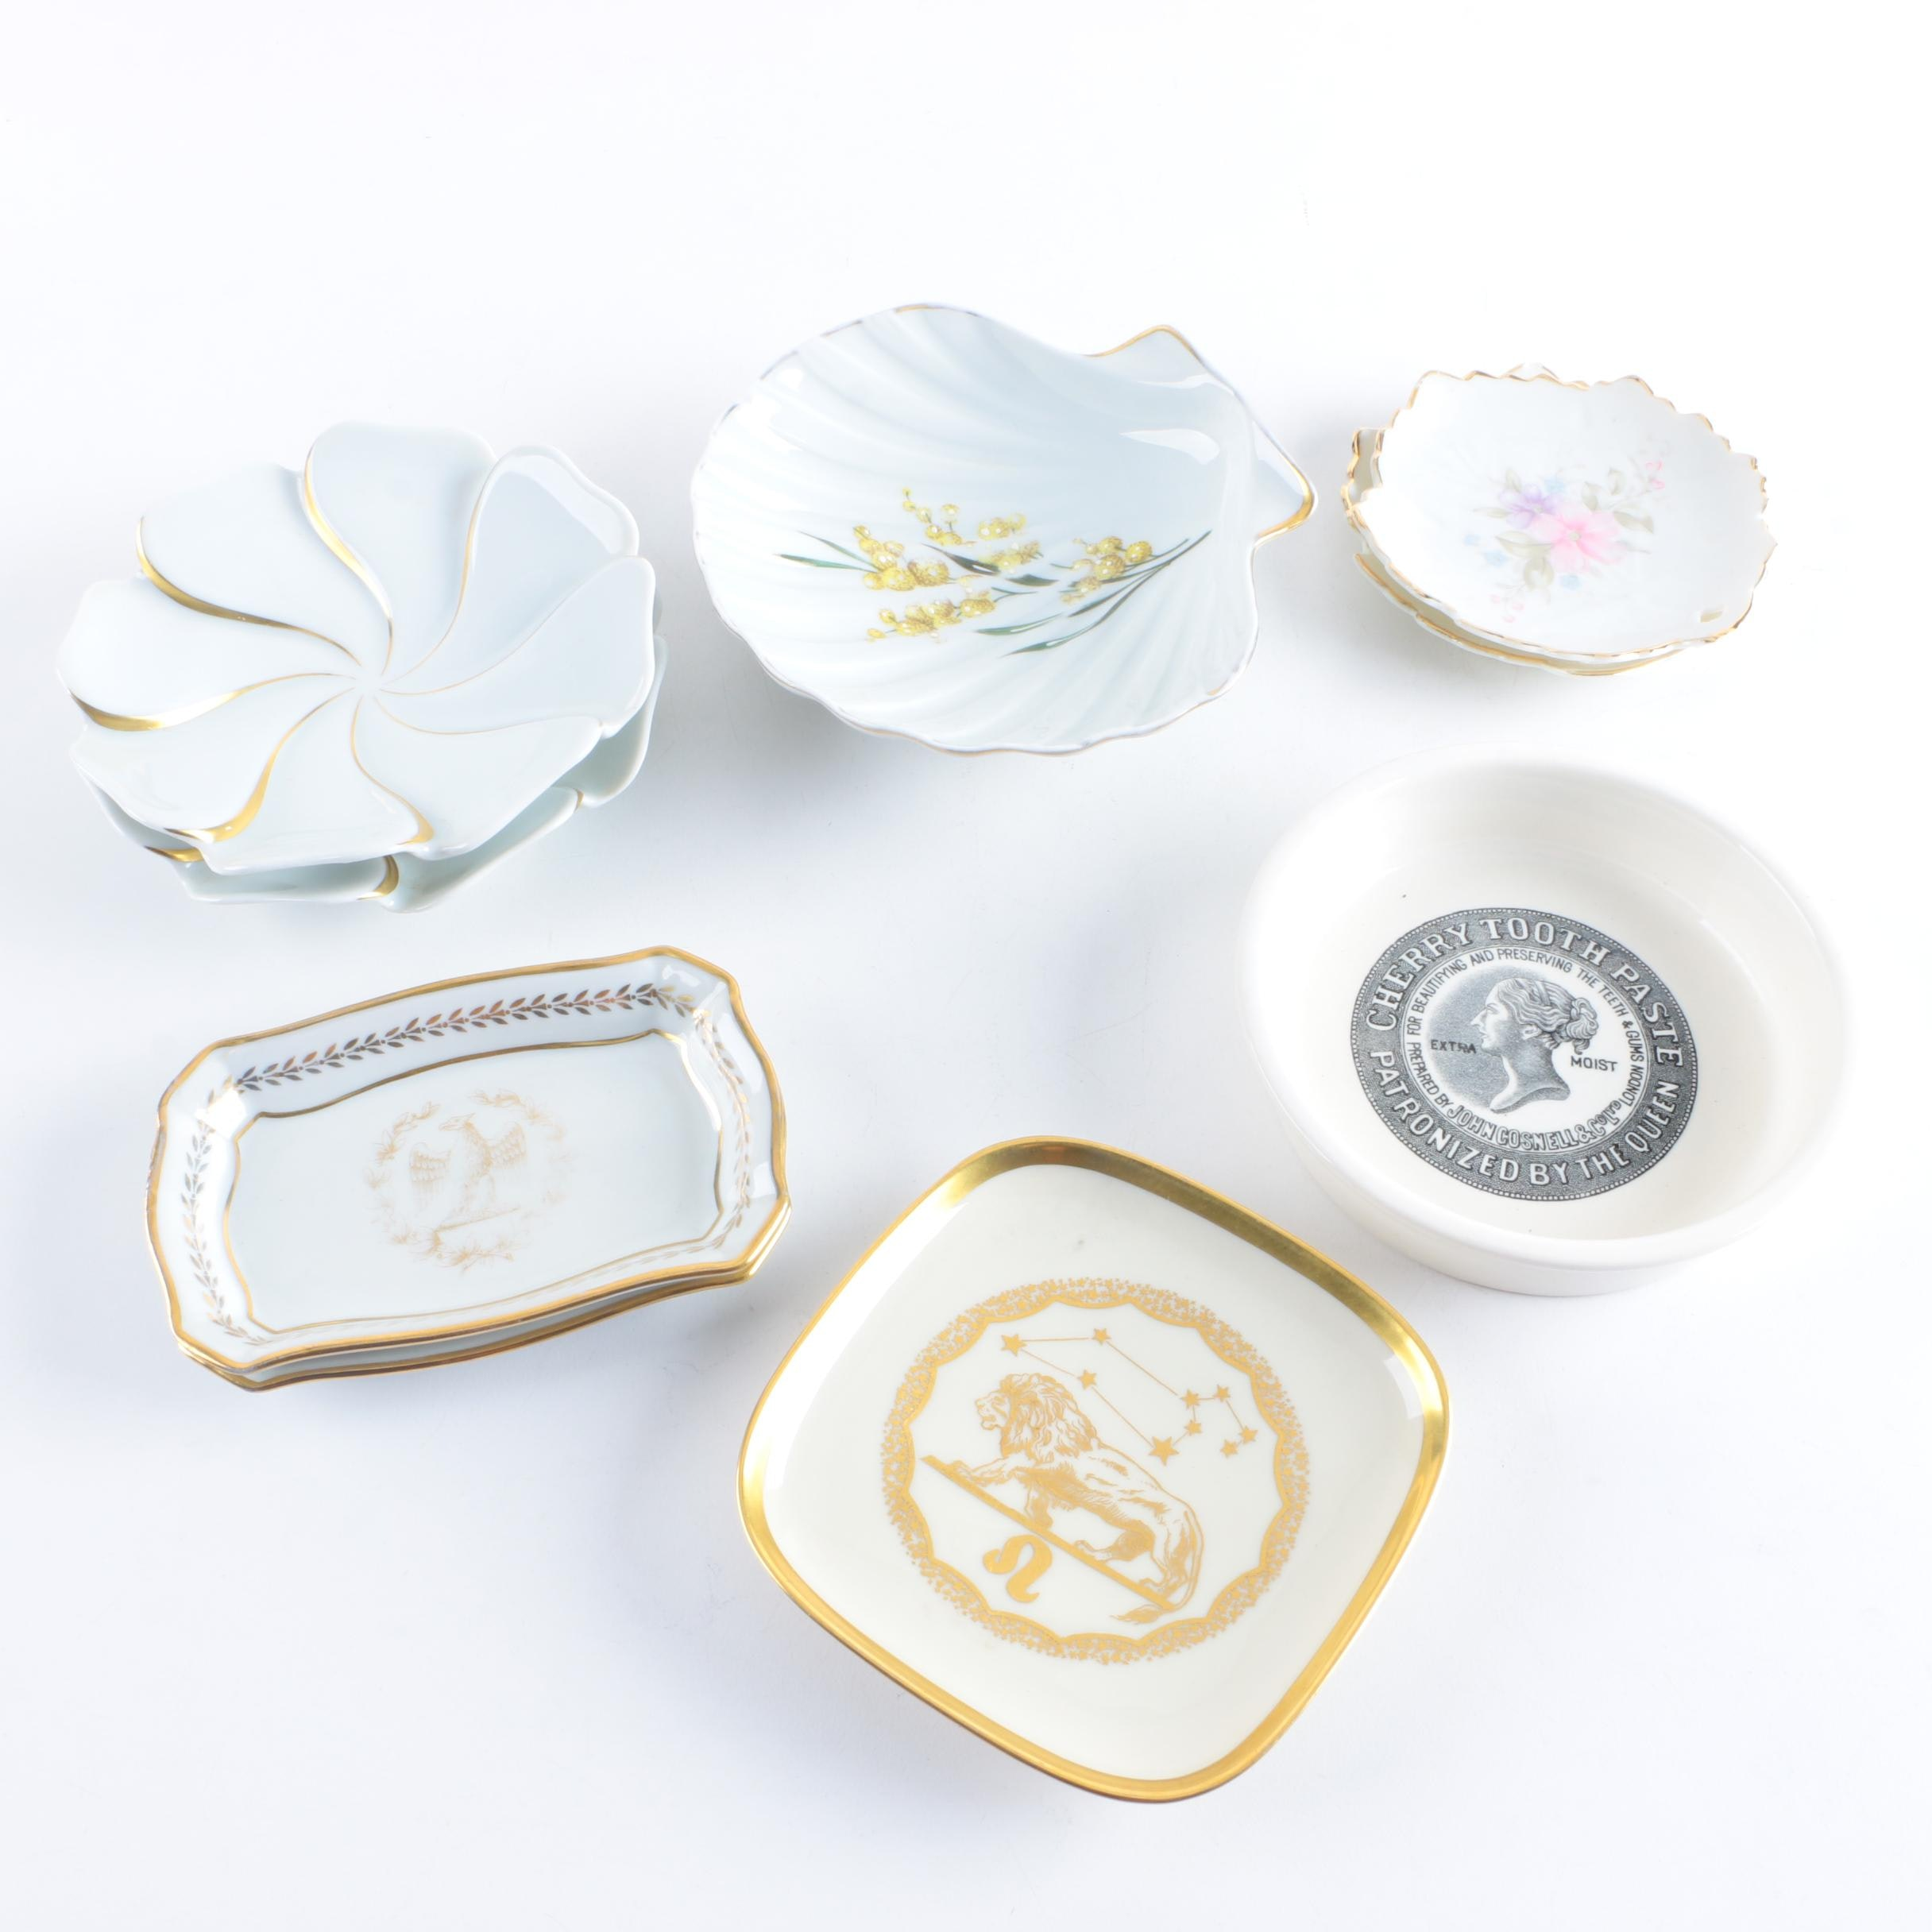 Small Ceramic and Porcelain Dishes featuring Limoges